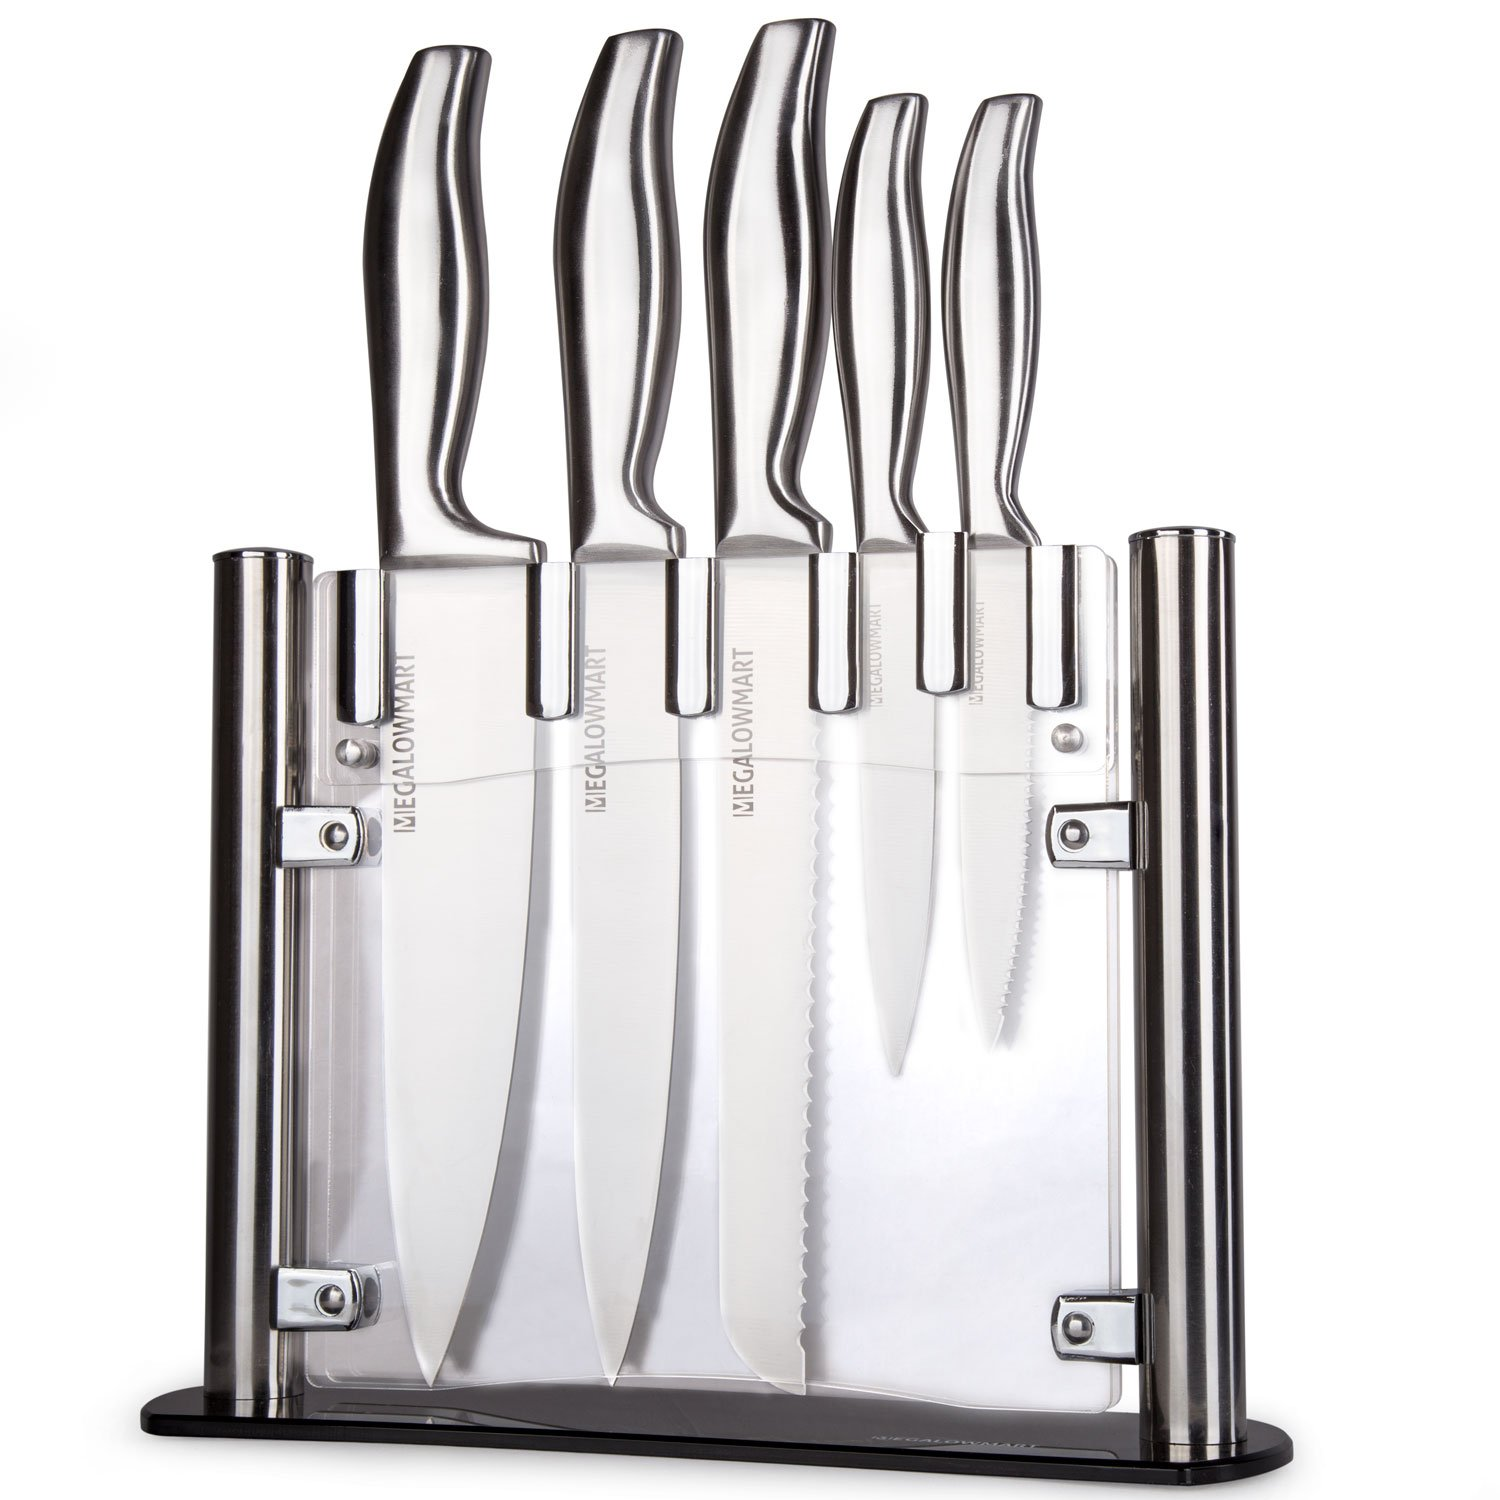 stainless steel kitchen knives set megalowmart professional 6 piece stainless steel kitchen knife set with ebay 3057